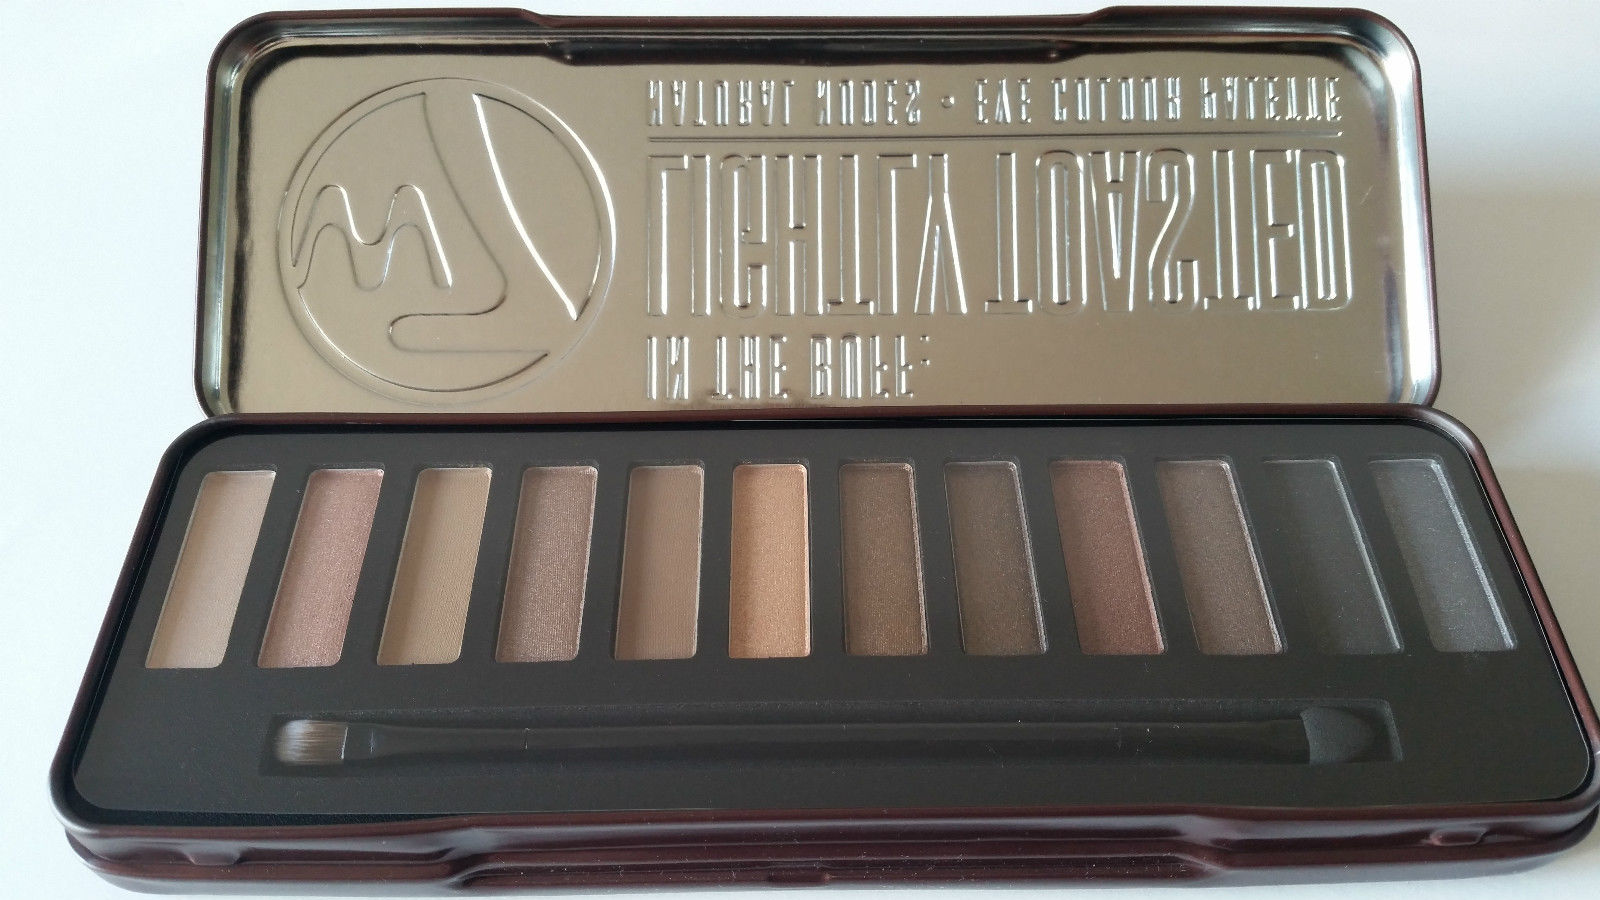 W7 IN THE BUFF LIGHTLY TOASTED NATURAL NUDES EYE COLOUR PALETTE - 12 SHADE EYESHADOW